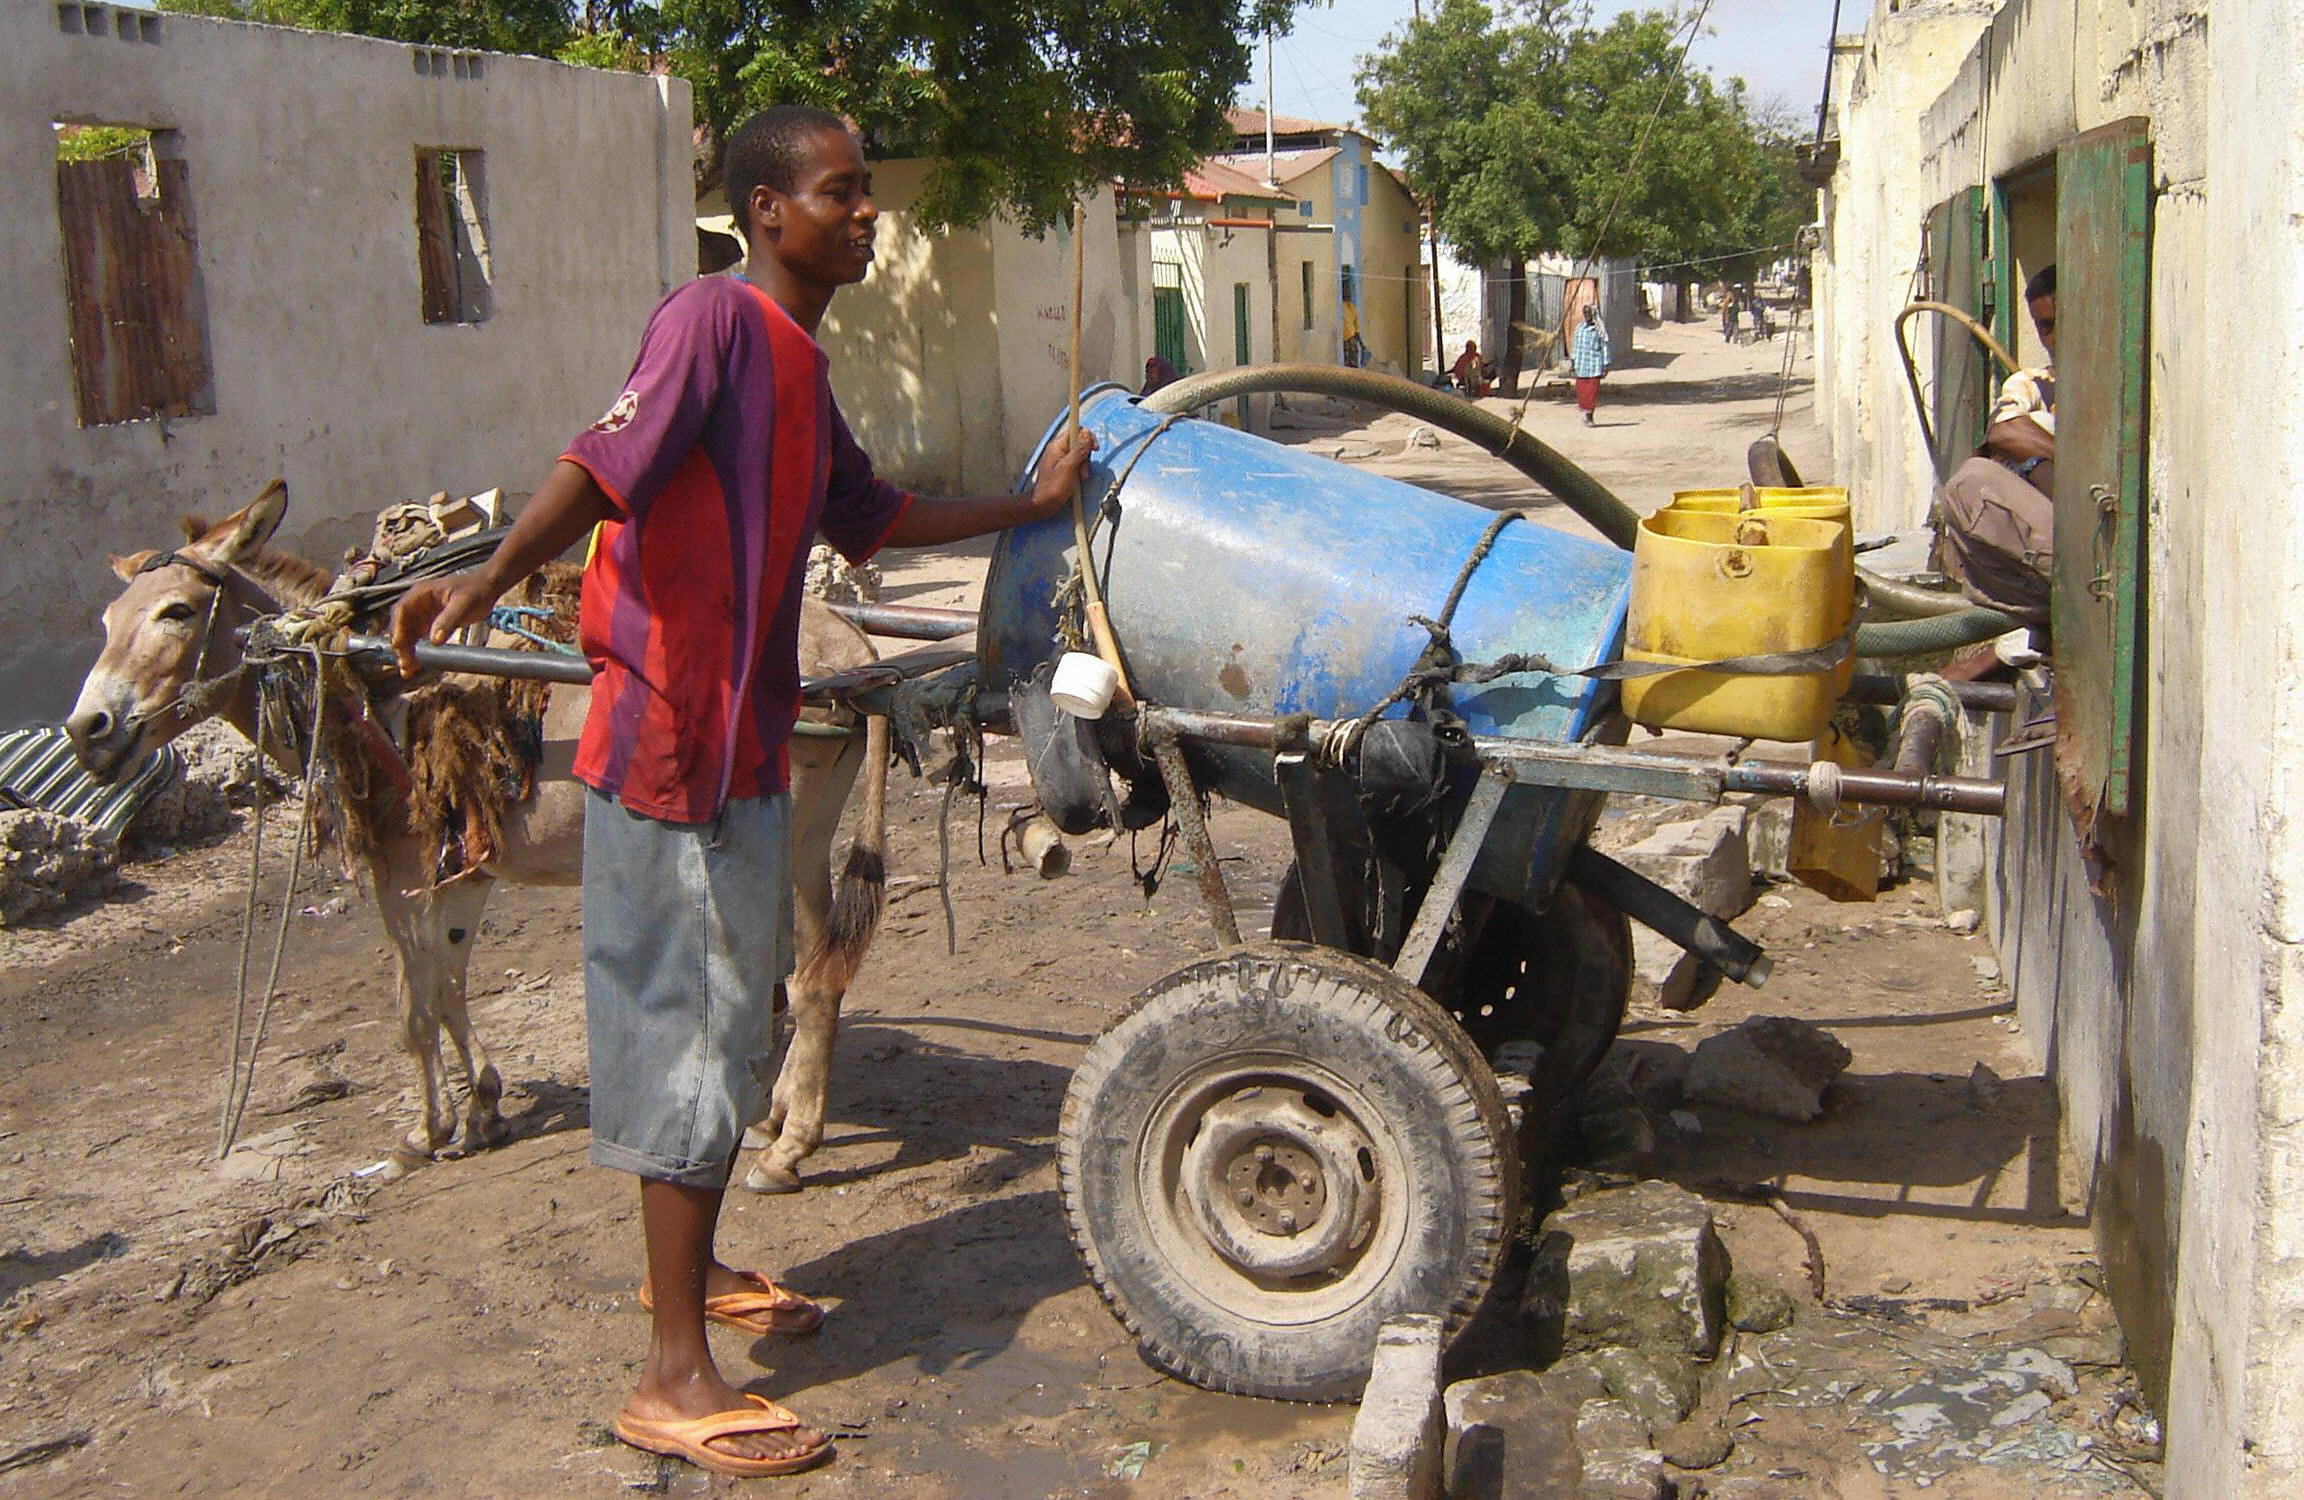 A boy sells water door-to-door in Somalia, tied for most corrupt. Pirates often seize aid shipments to the country.